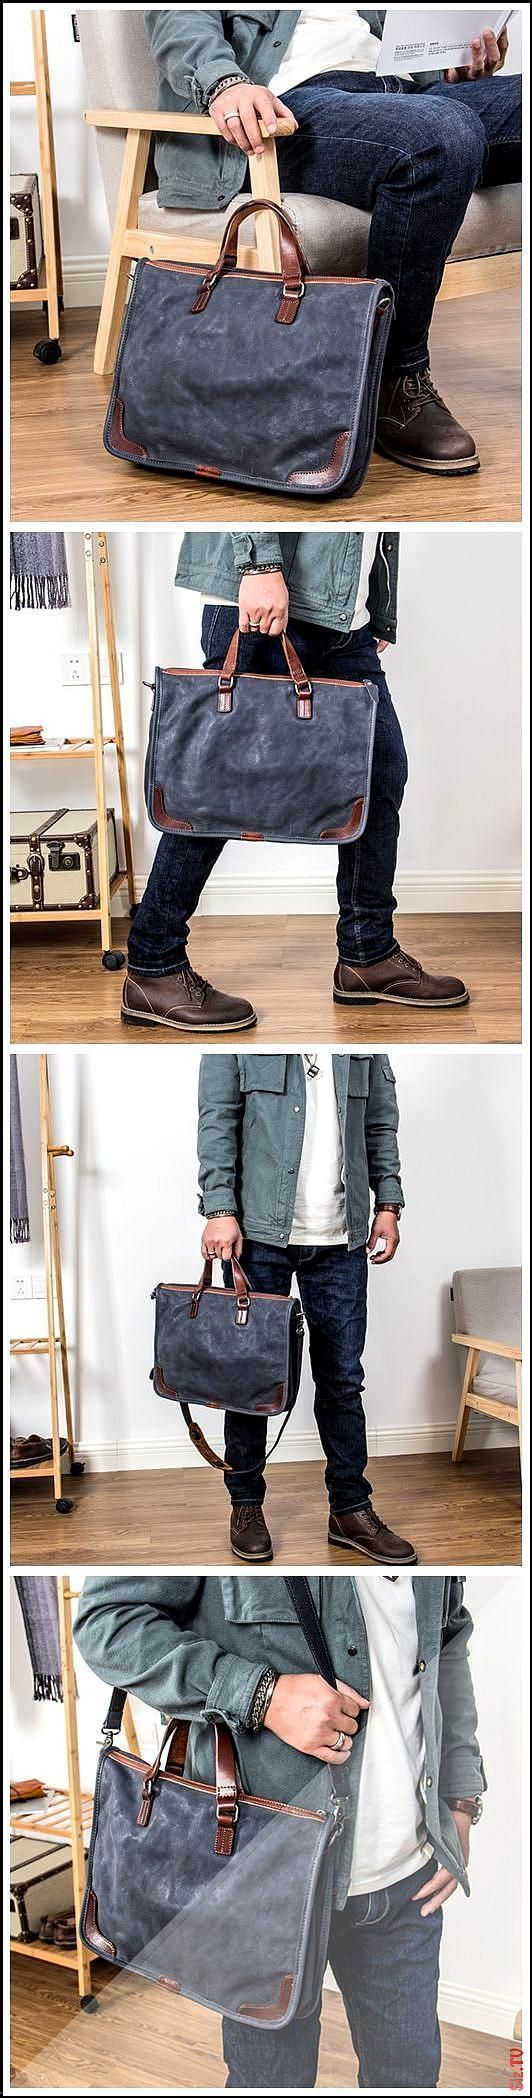 Handmade 13 39 39 Laptop Bag Men 39 s Leather Briefcas - Handmade 13 039 039 Lap...